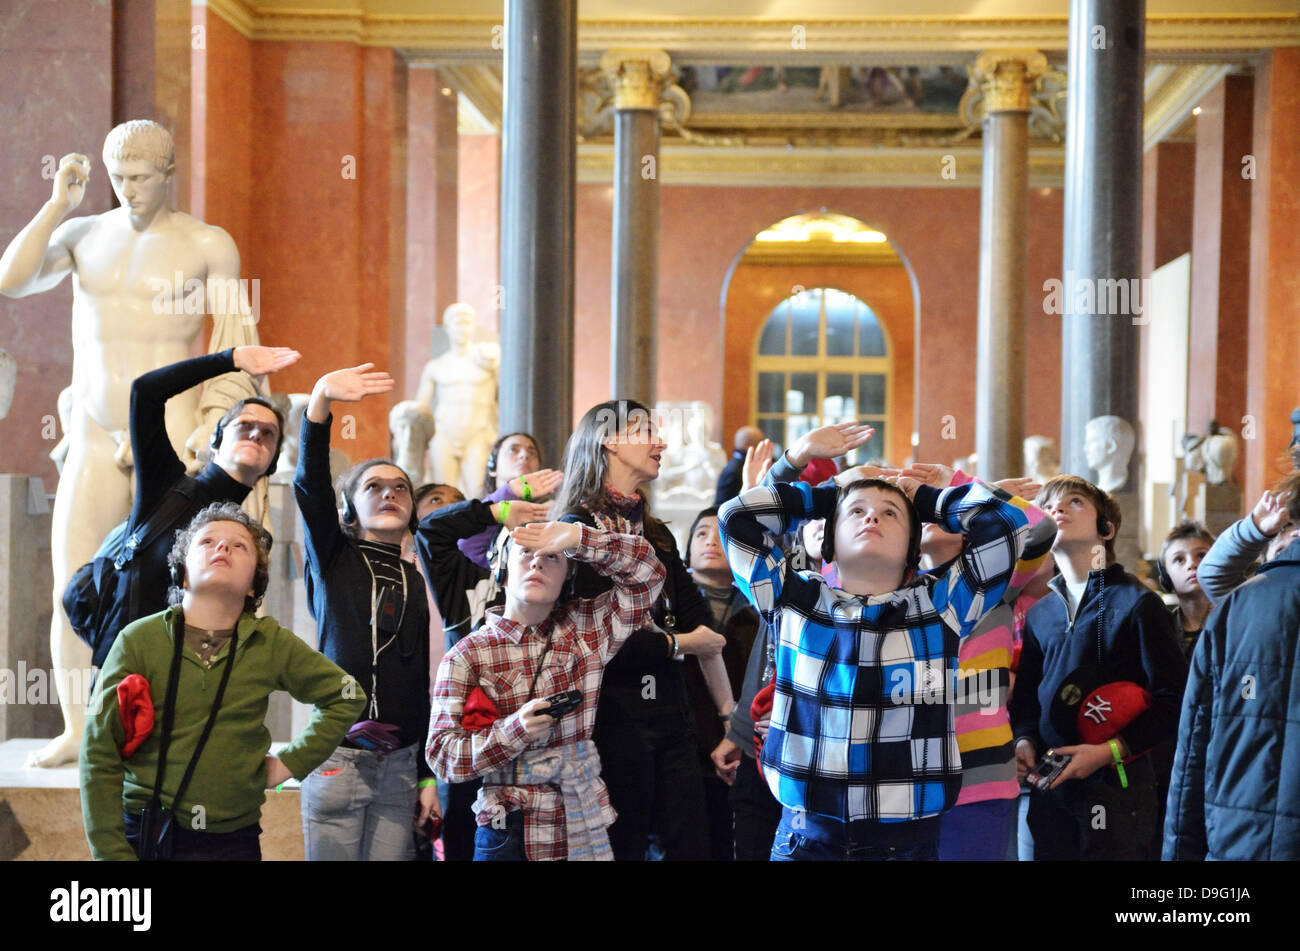 Children at The Louvre Museum in Paris, France - Jan 2012 - Stock Image